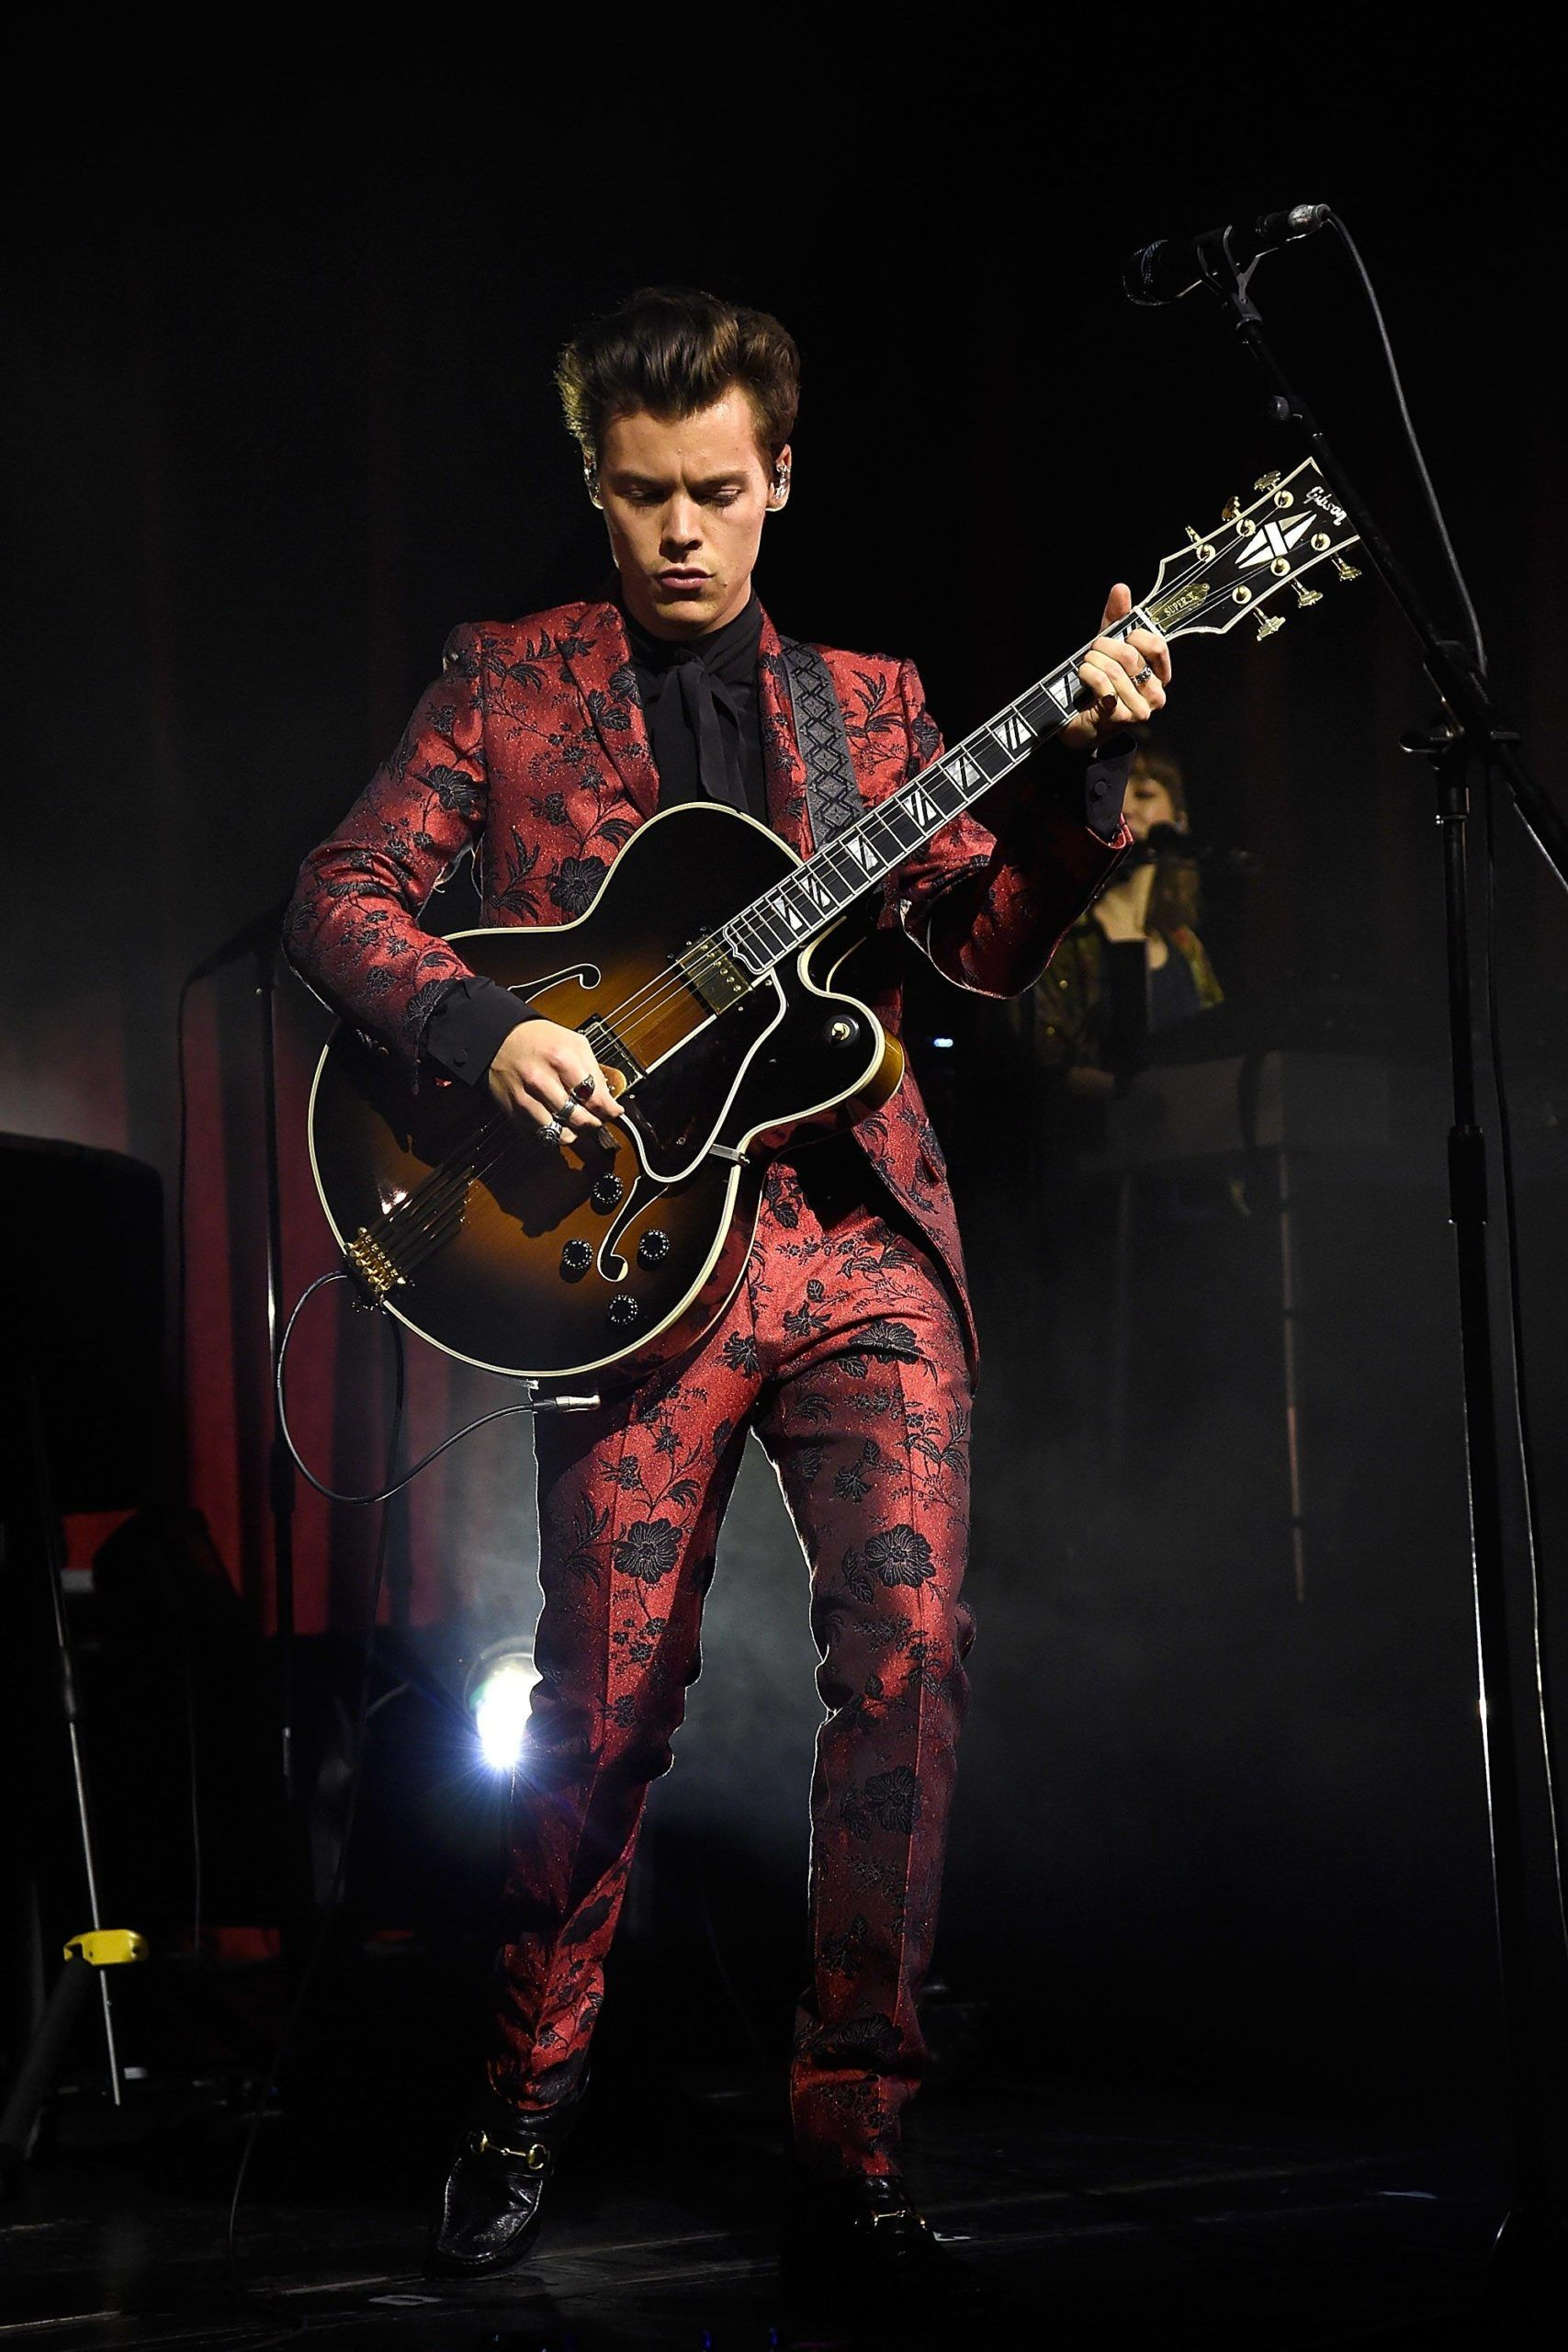 15 Amazing Suits That Harry Styles Wore on His World Tour - 15 Amazing Suits That Harry Styles Wore on His World Tour    Every Harry Styles Suit From His Solo T - #AlexaChung #Amazing #AngelaSimmons #CannesFilmFestival #CelebrityStyle #DianeKruger #EmmaRoberts #Harry #KendallJennerOutfits #KimKardashian #MiraDuma #MiroslavaDuma #RachelBilson #RedCarpetDresses #RedCarpetFashion #RedCarpetLooks #SarahJessicaParker #ShilpaShetty #SonakshiSinha #styles #StylingTips #suits #TokyoFashion #Tour #Victo